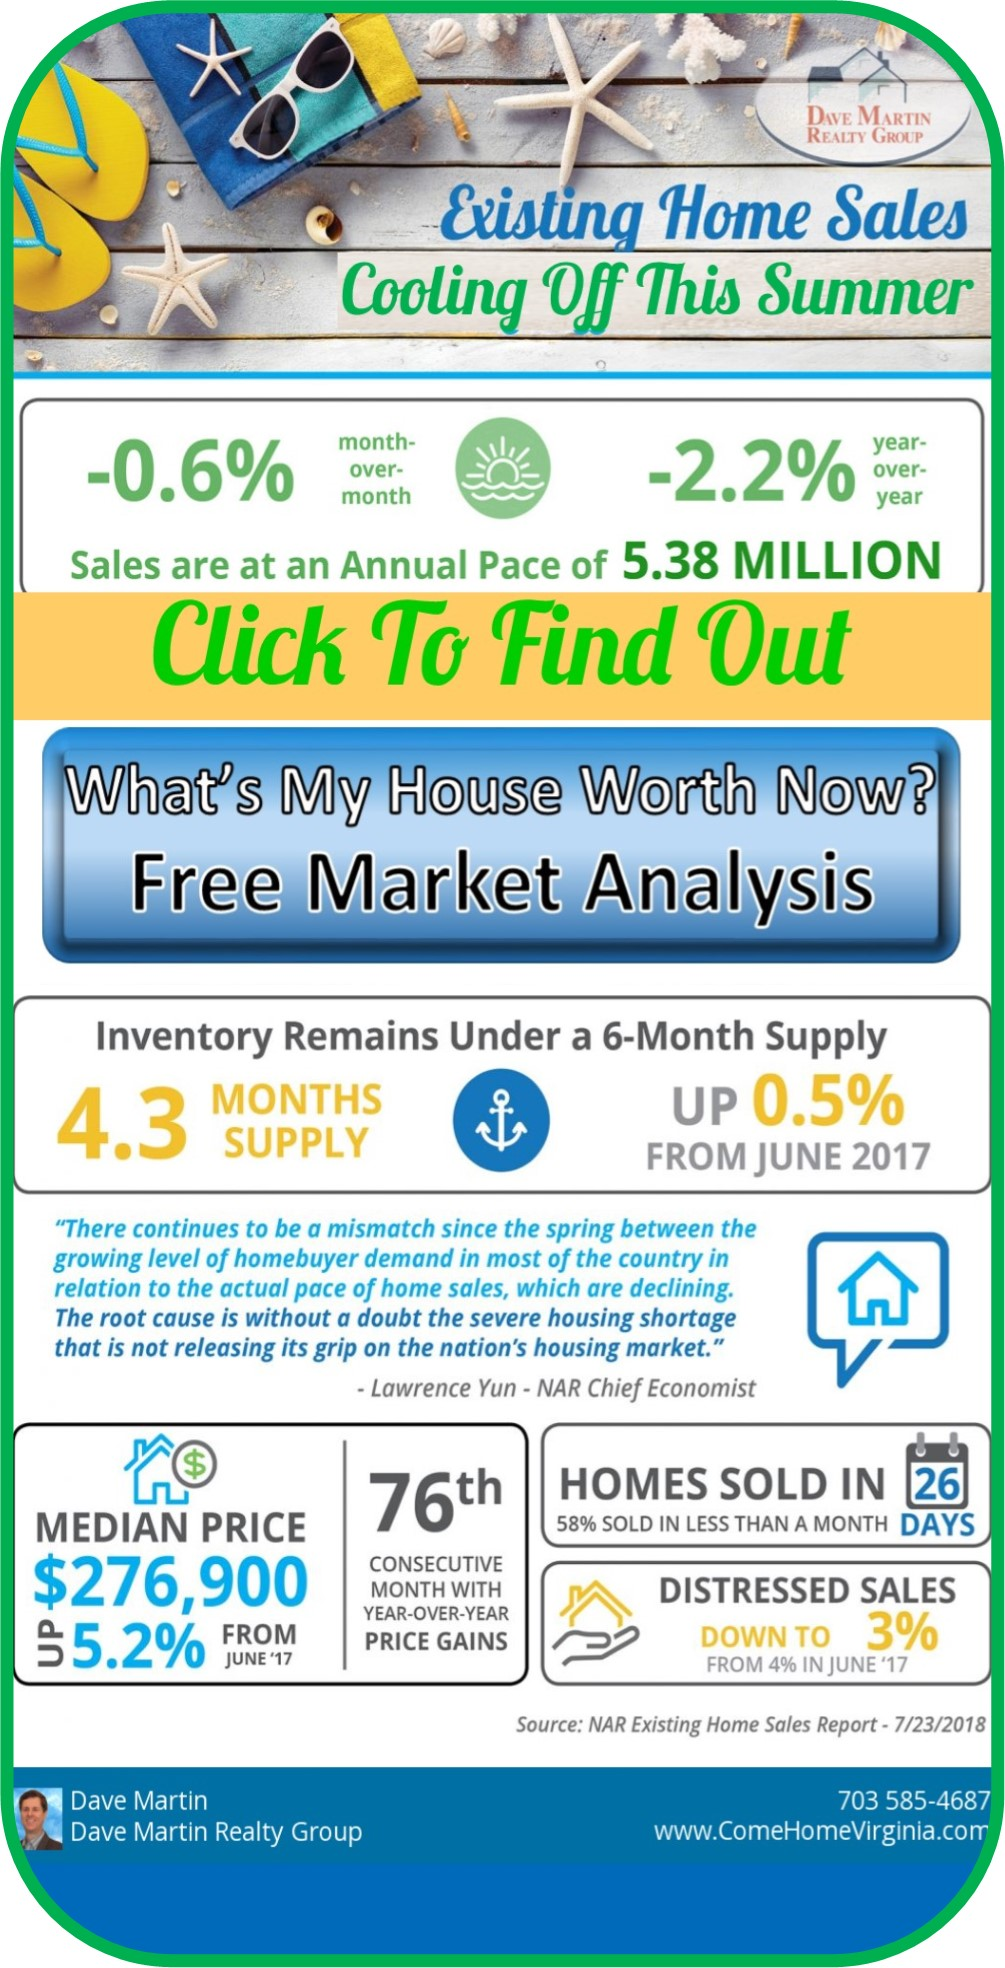 Hot Summer Home Sales of existing homes cool Dave Martin Realtor Northern Virginia Buyer Agent Listing Specialist Market Value